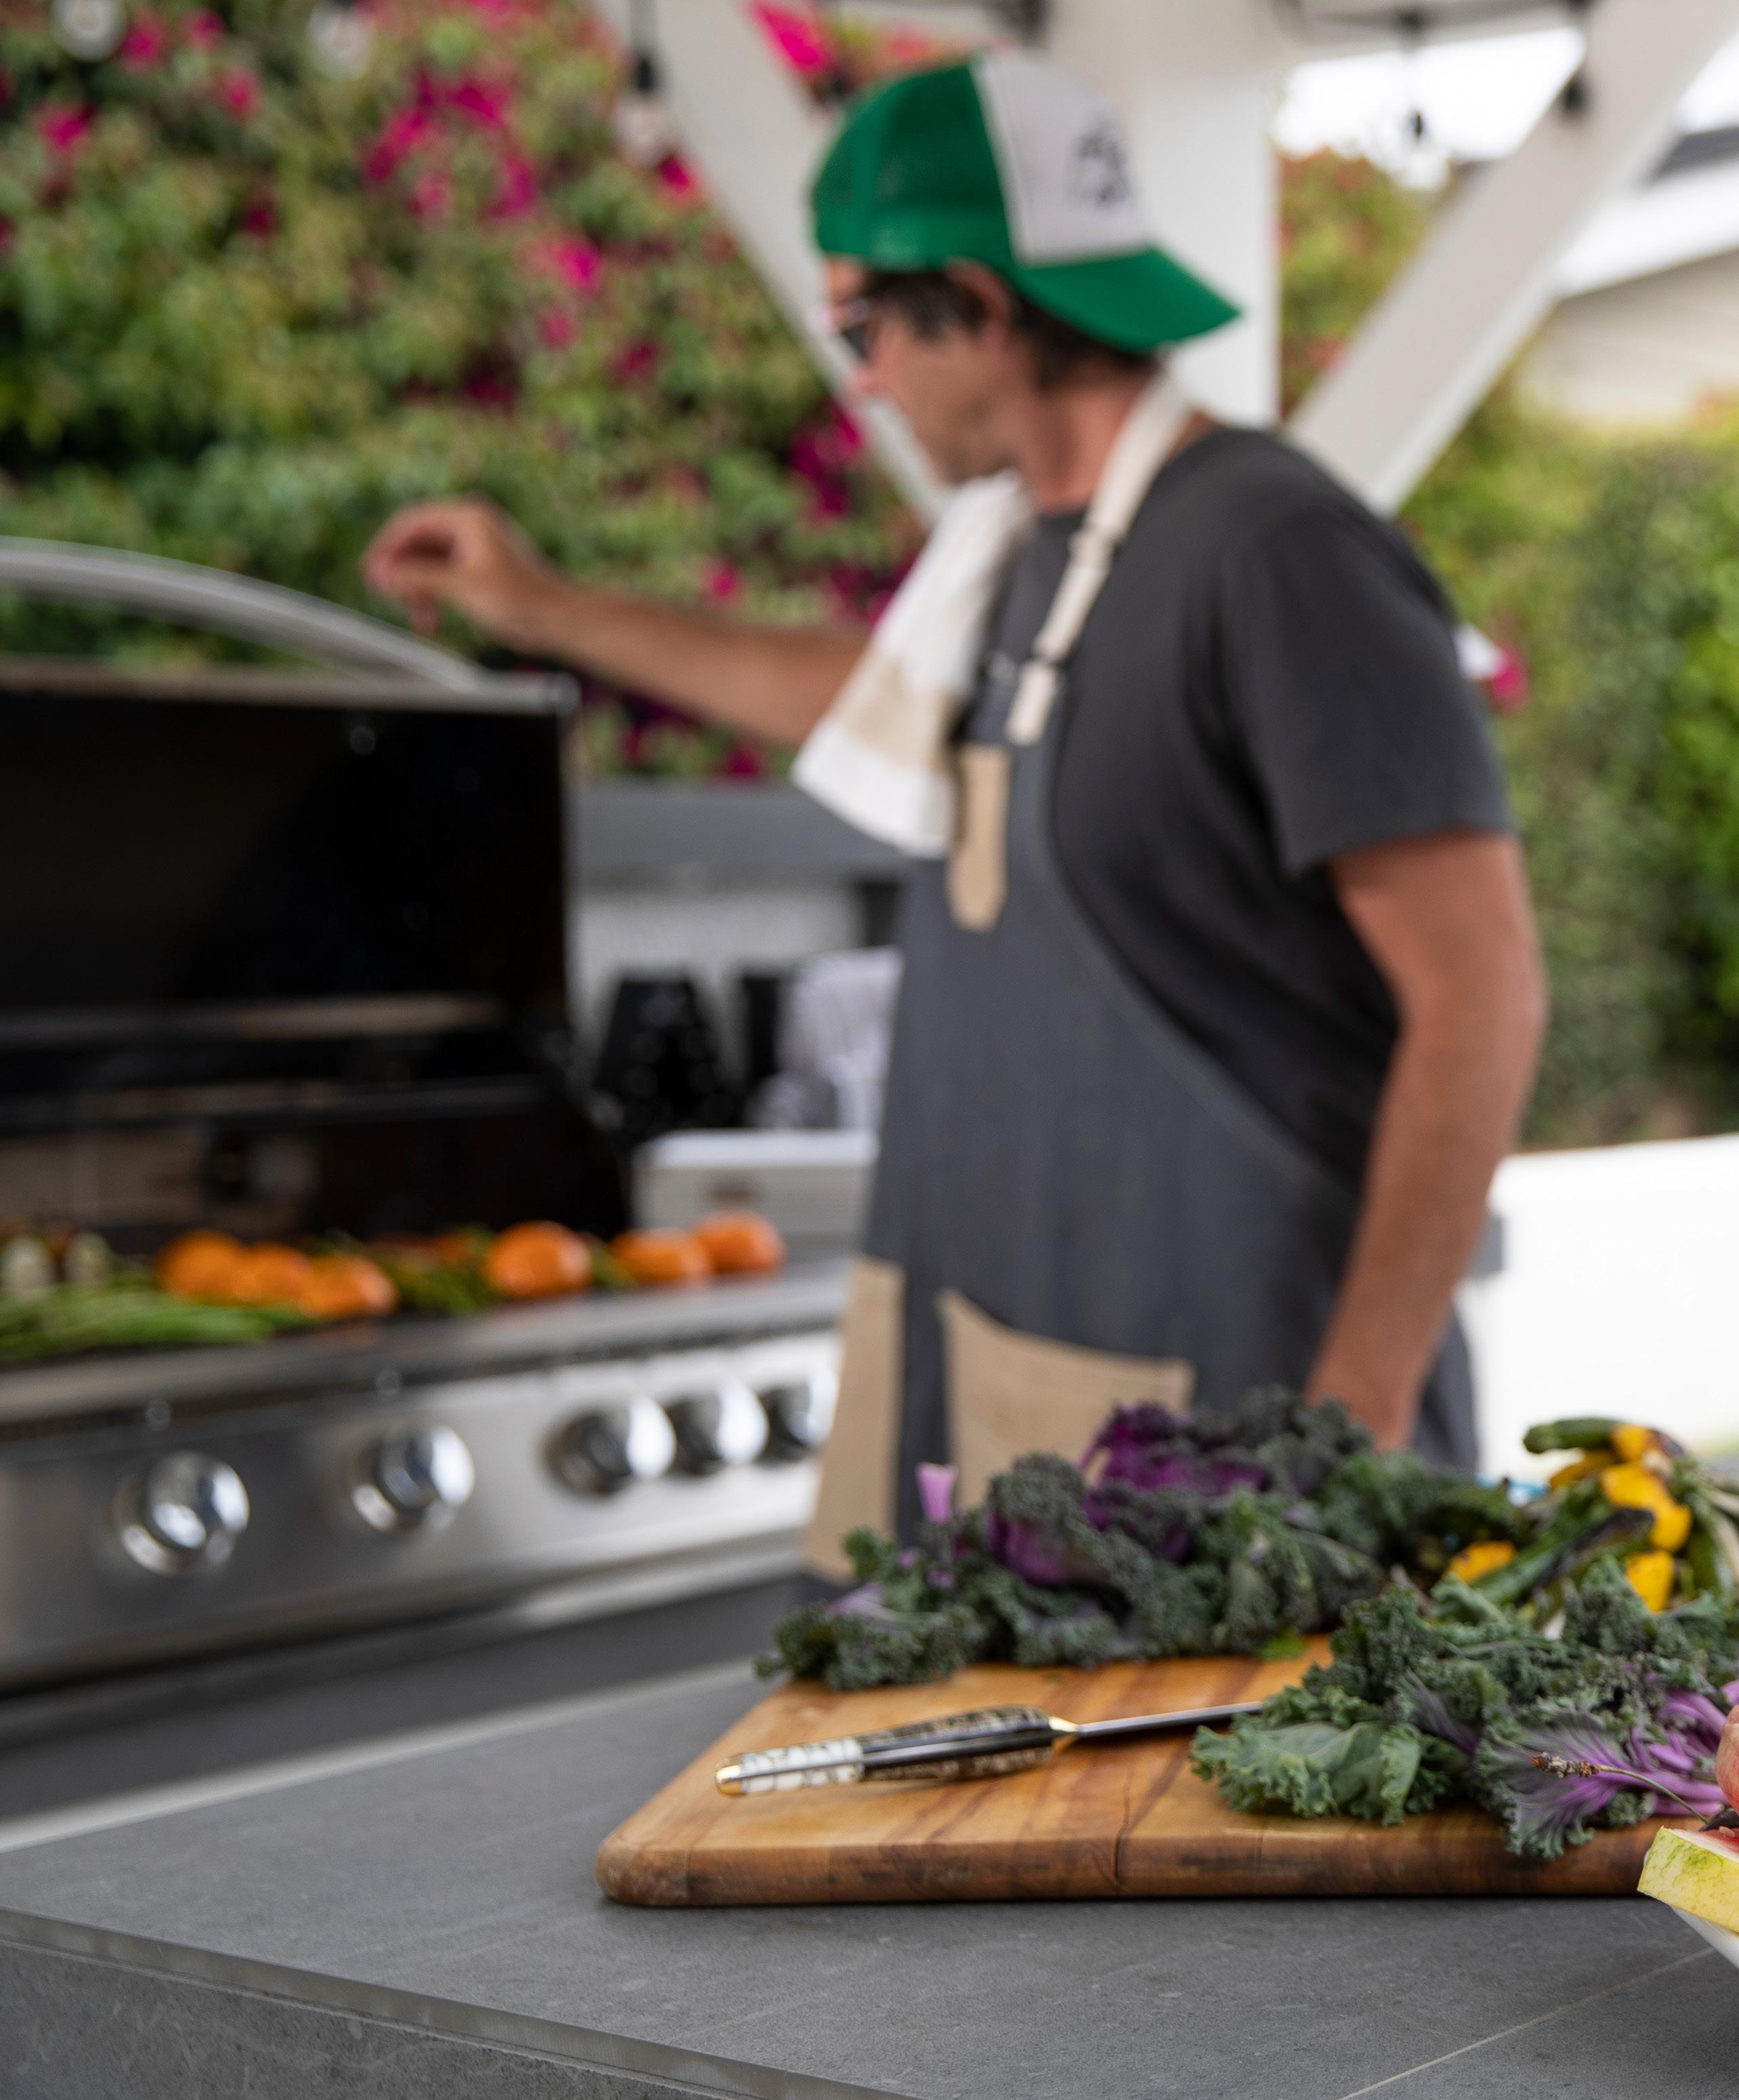 Page 72 of Summertime, and the Grillin' is Easy!